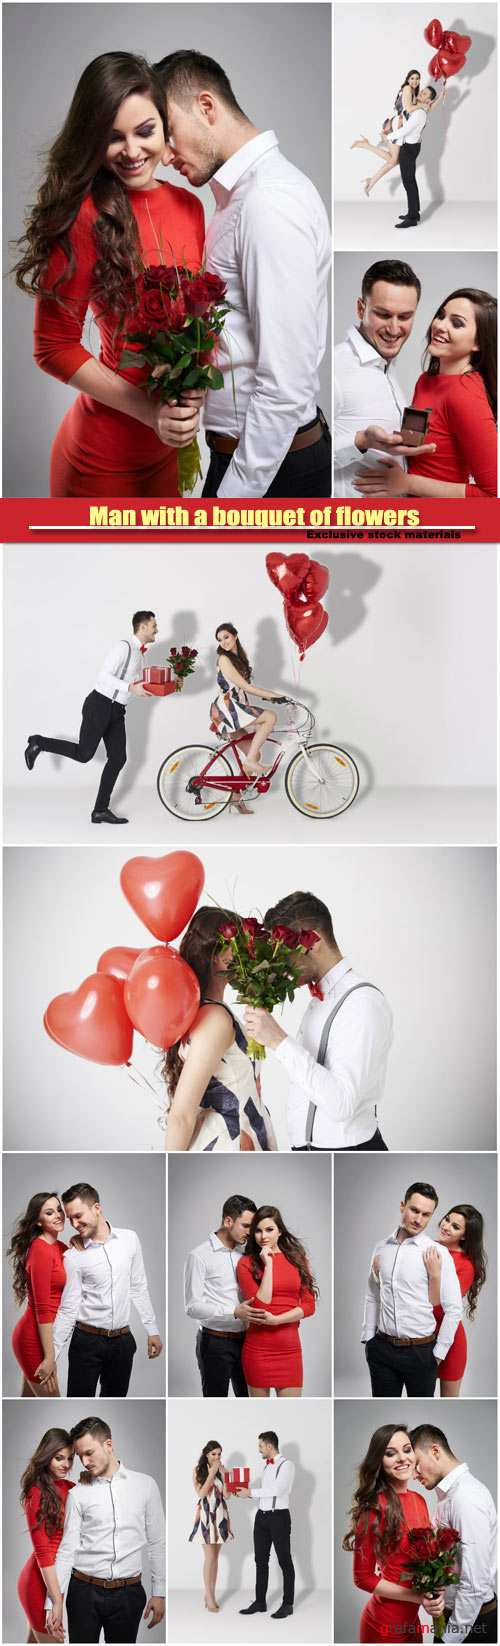 Man with a bouquet of flowers for his beautiful woman